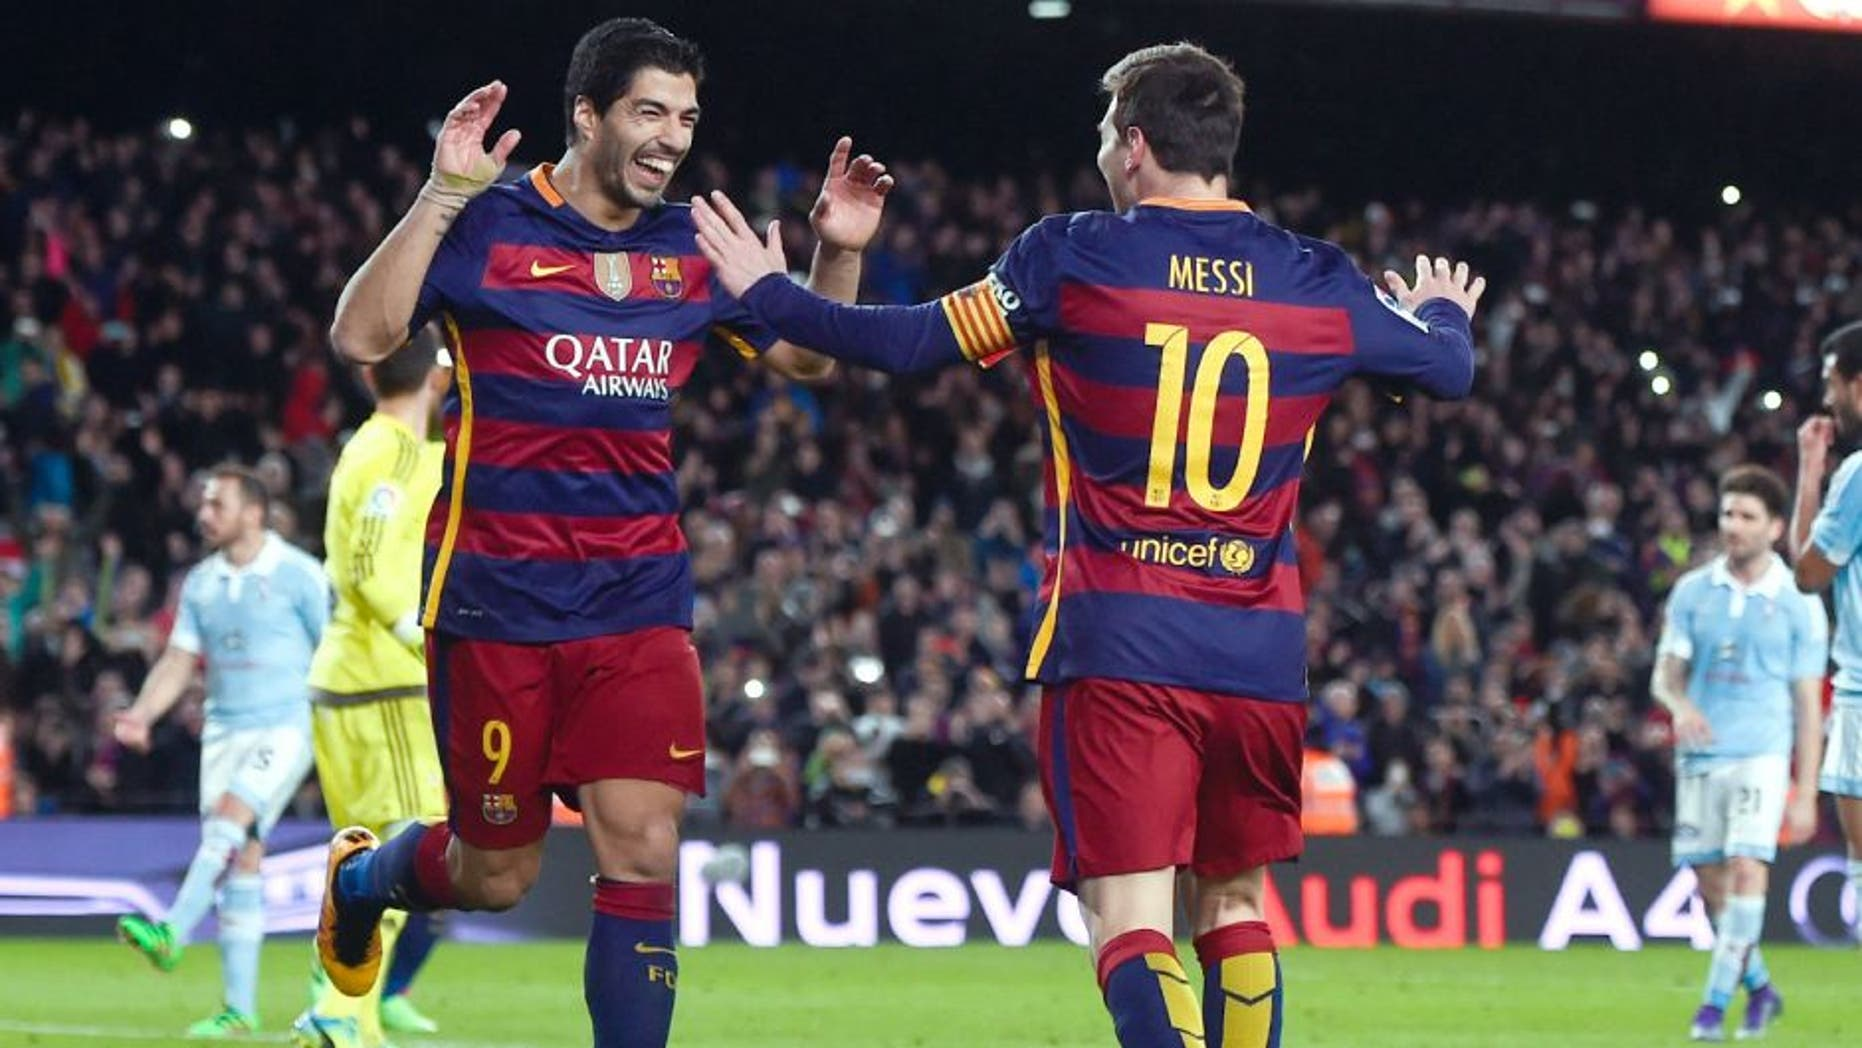 BARCELONA, SPAIN - FEBRUARY 14: (L-R) Luis Suarez of FC Barcelona celebrates with his team mate Lionel Messi of FC Barcelona after scoring his team's fourth goal from the penalty spot during the La Liga match between FC Barcelona and Celta Vigo at Camp Nou on February 14, 2016 in Barcelona, Spain. (Photo by David Ramos/Getty Images)